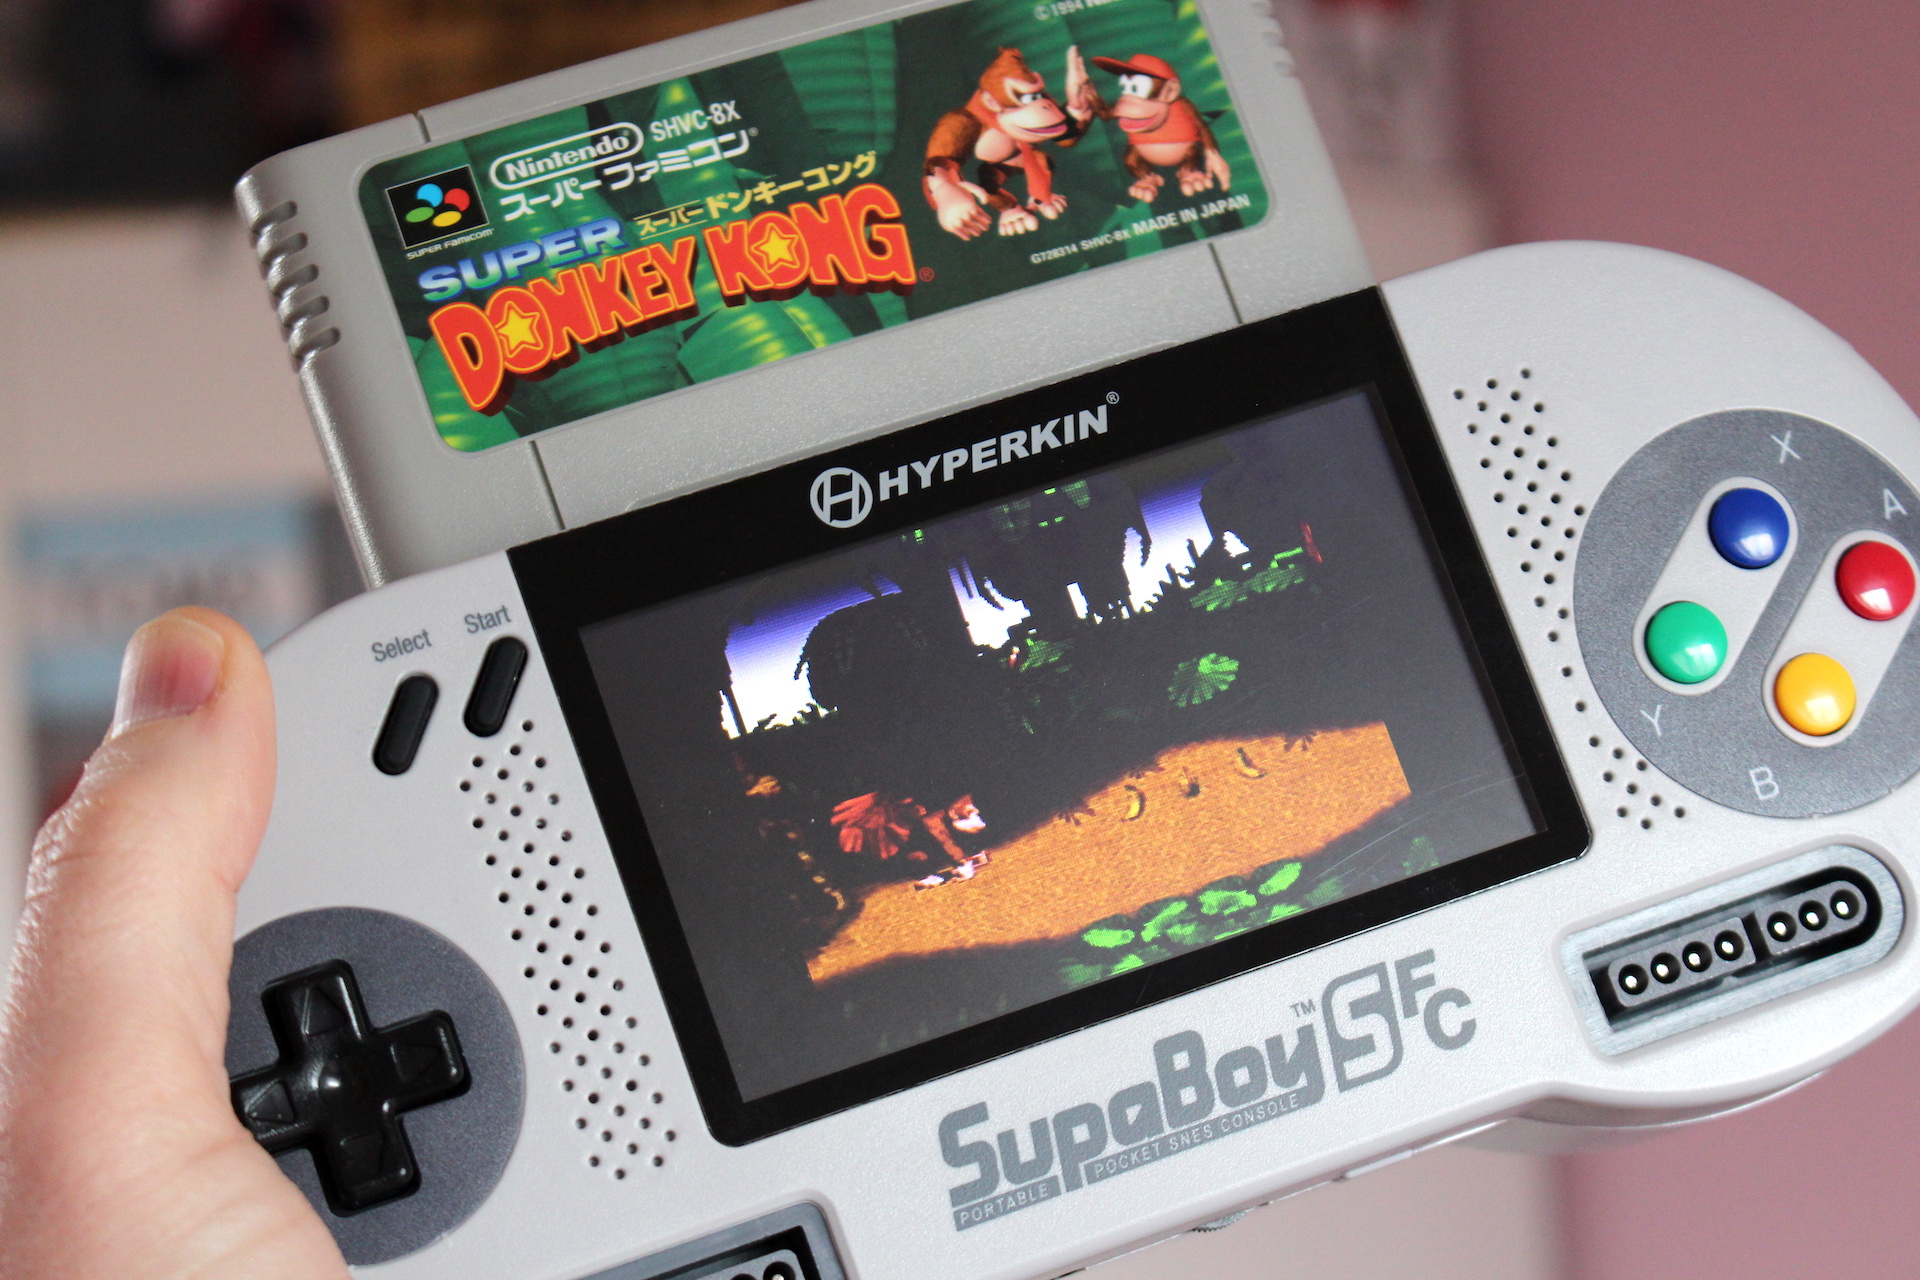 Hardware Review: The Hyperkin SupaBoy SFC Is A Portable SNES For